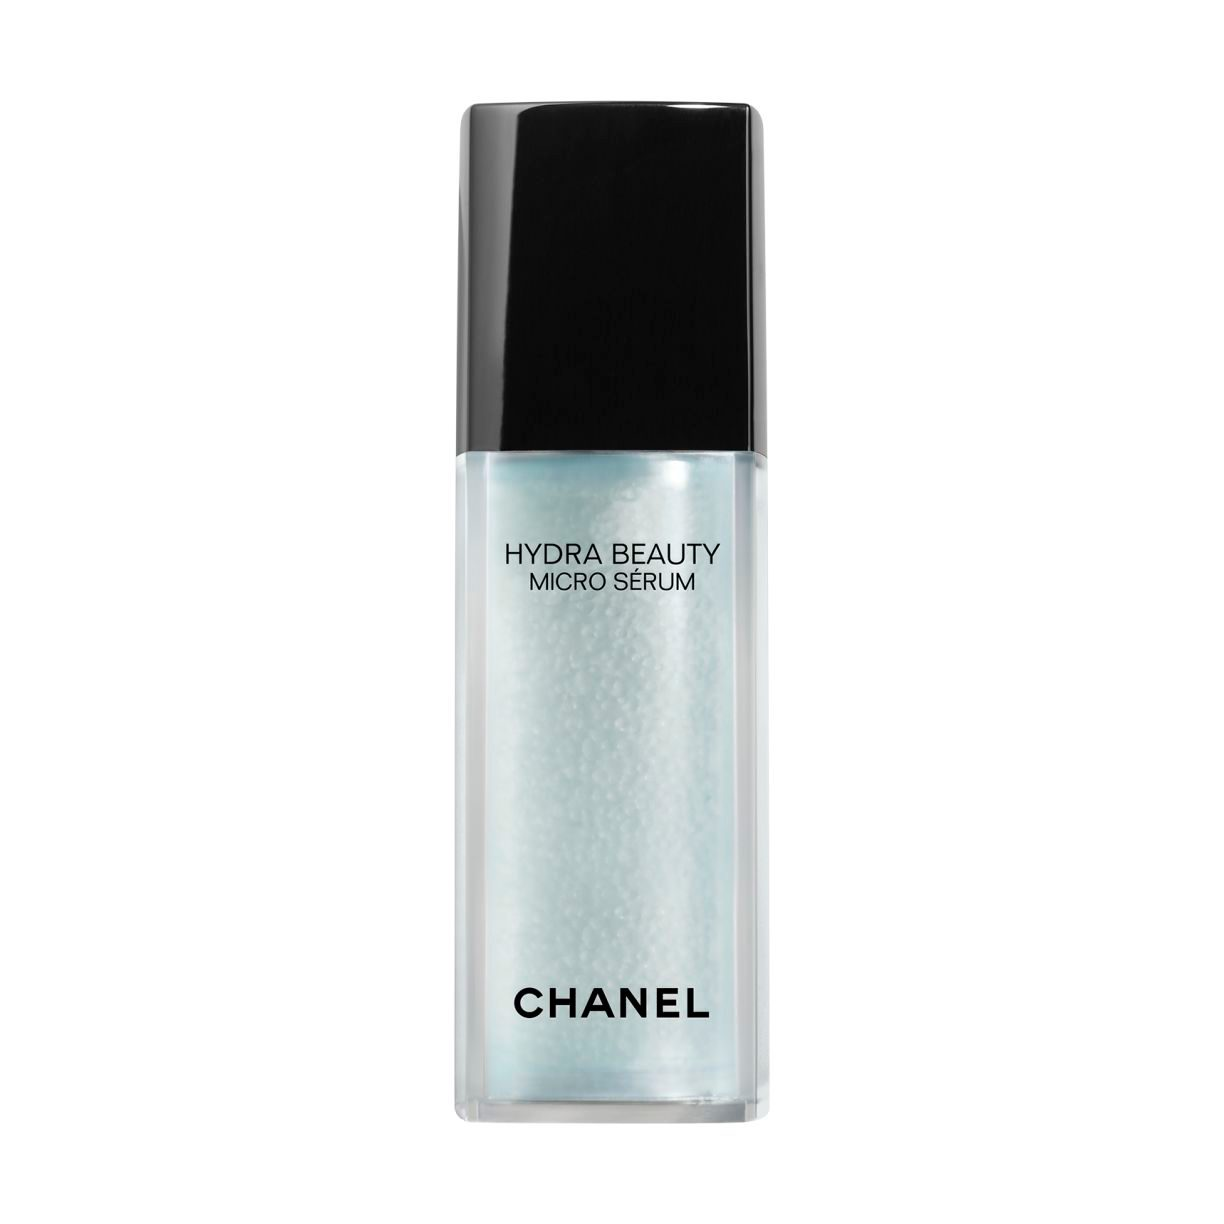 Soleil Tan De Chanel Bronzing Makeup Base Makeup Chanel